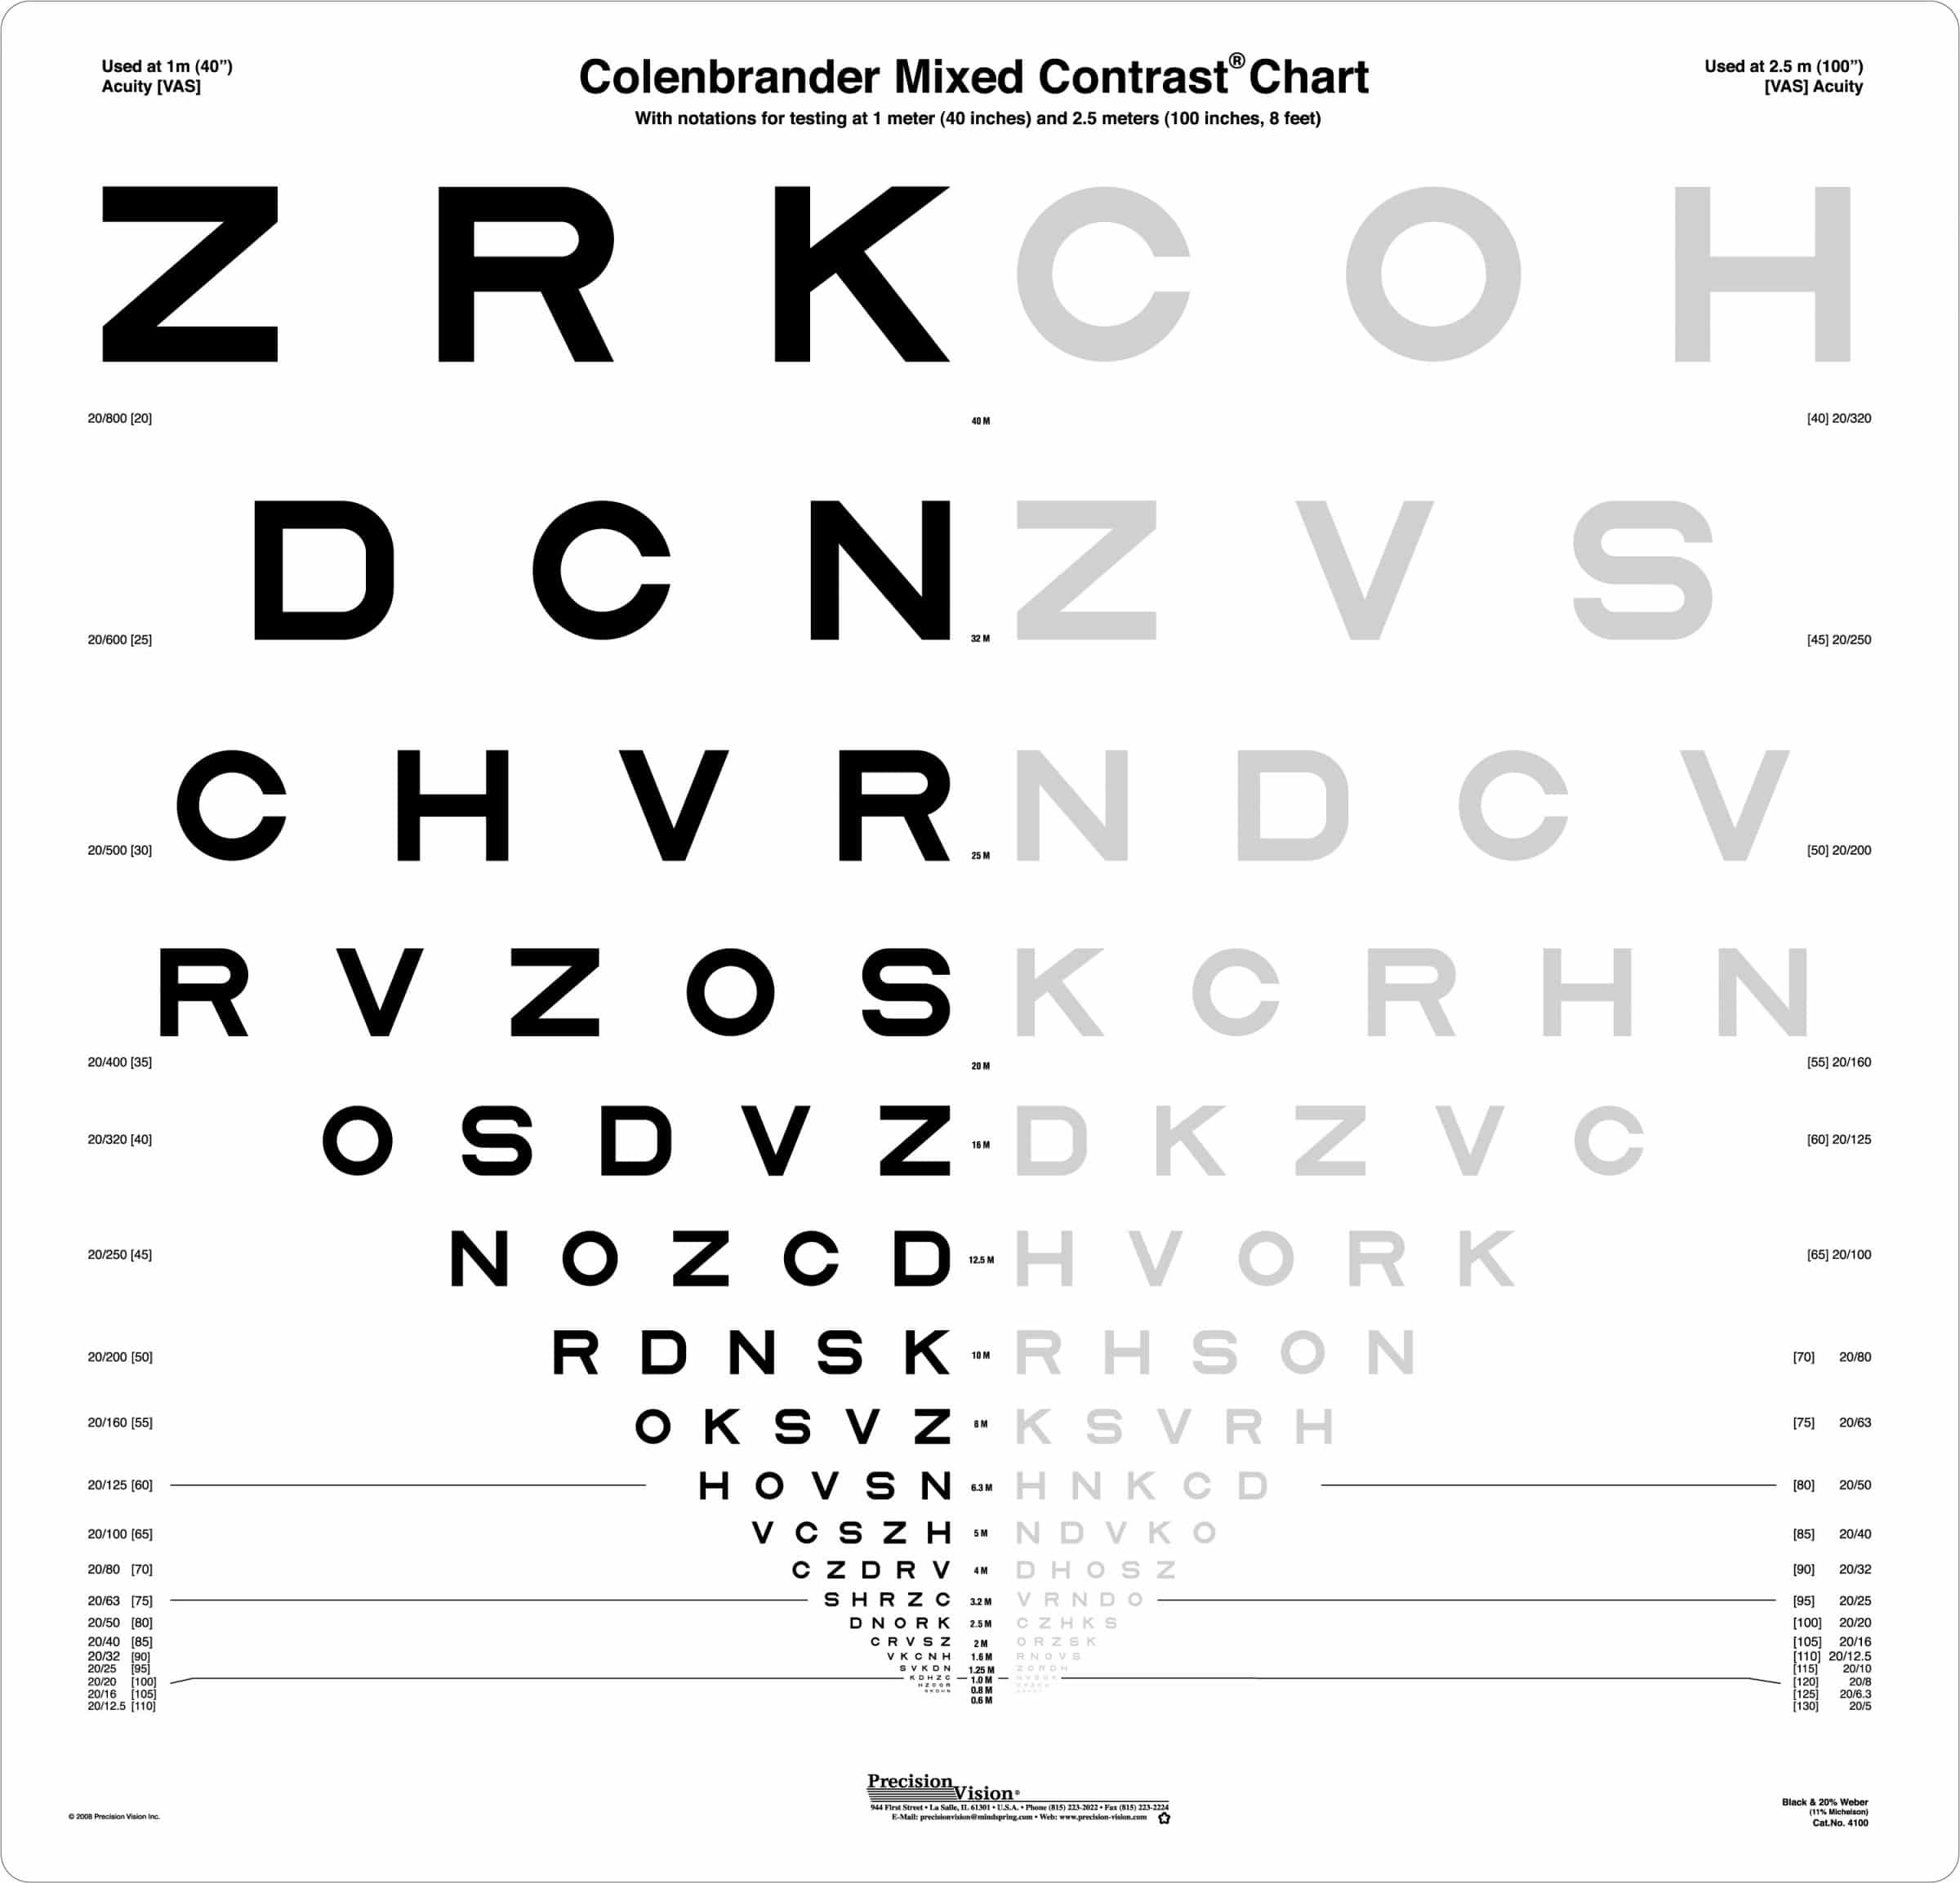 Mixed Contrast Intermediate and Computer Acuity Chart